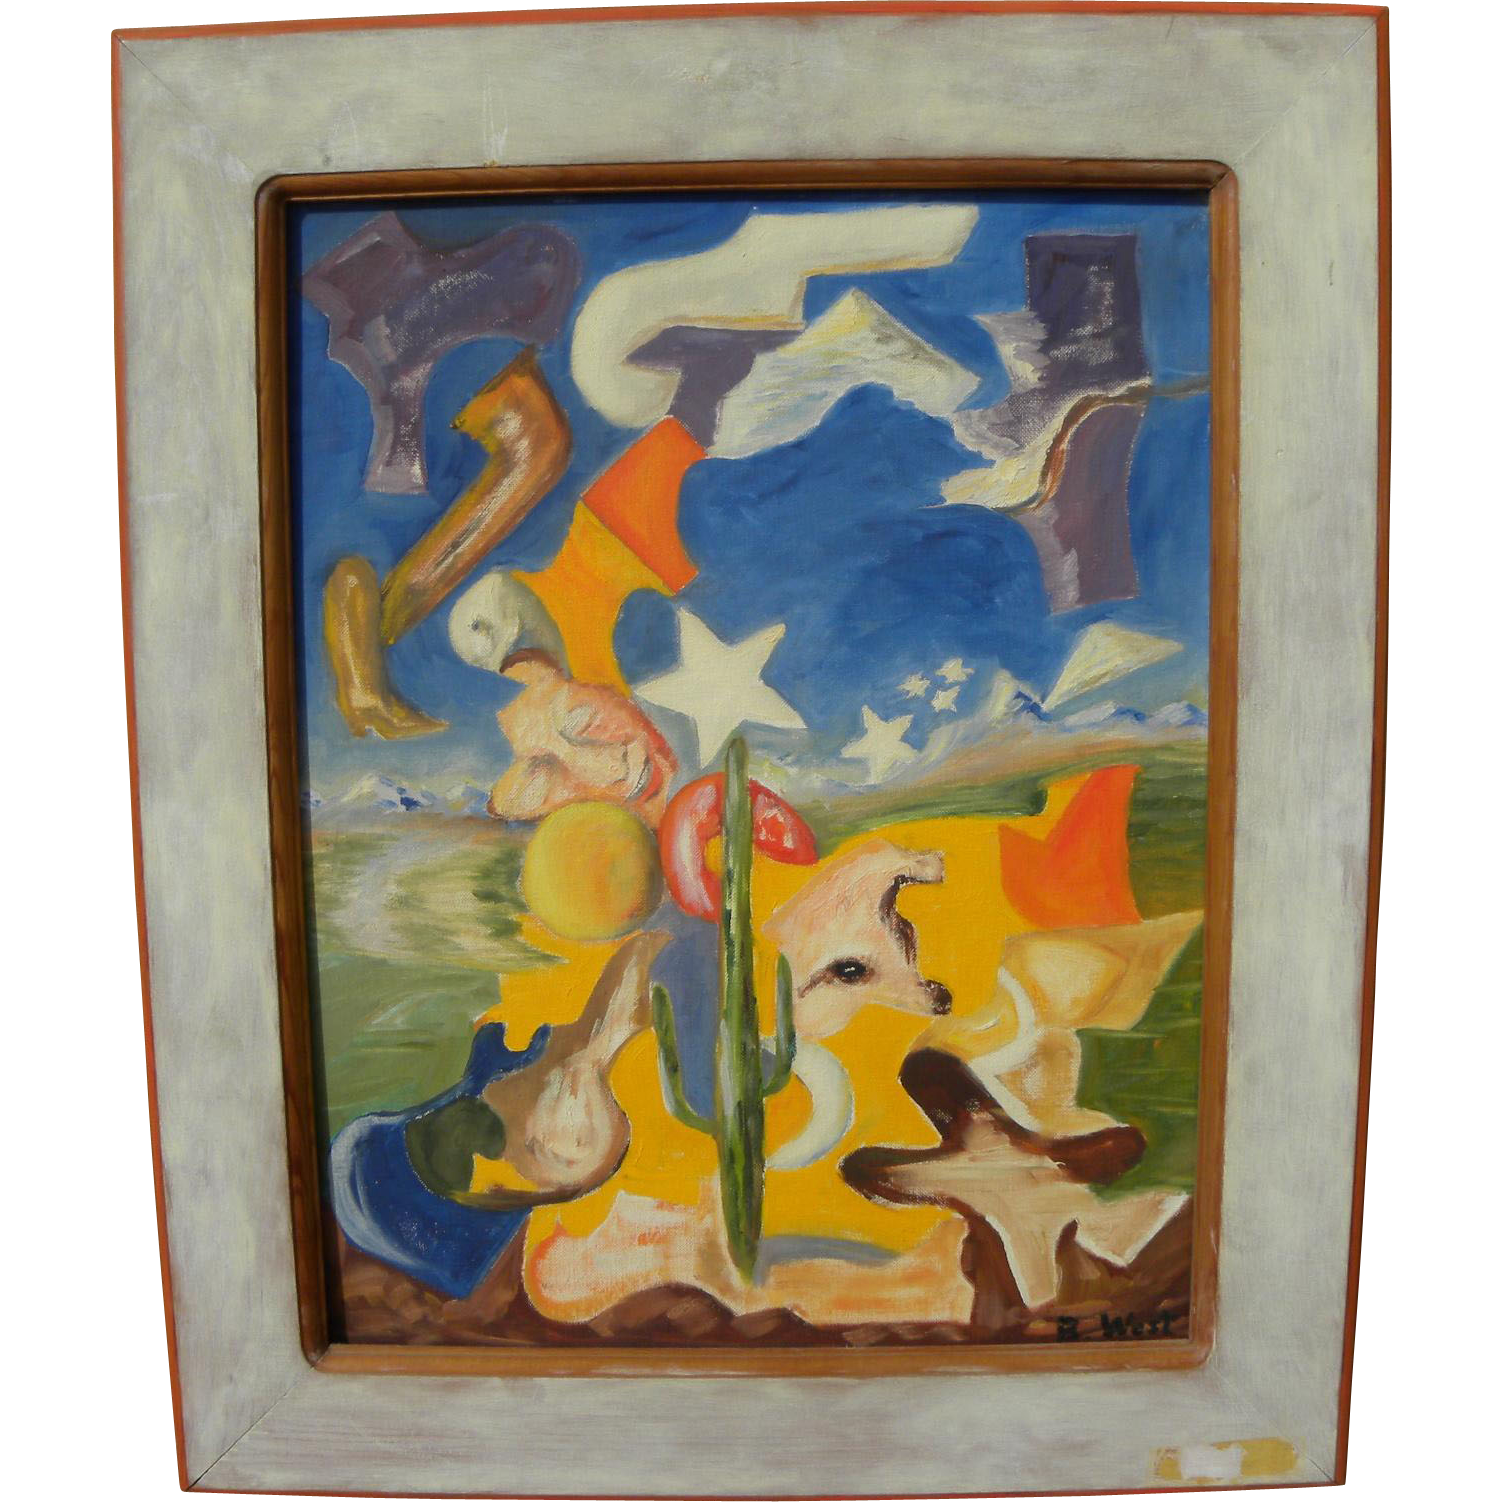 "Vintage Arizona art 1952 modernist exhibited painting by artist BESS WEST titled ""Fantasia"""